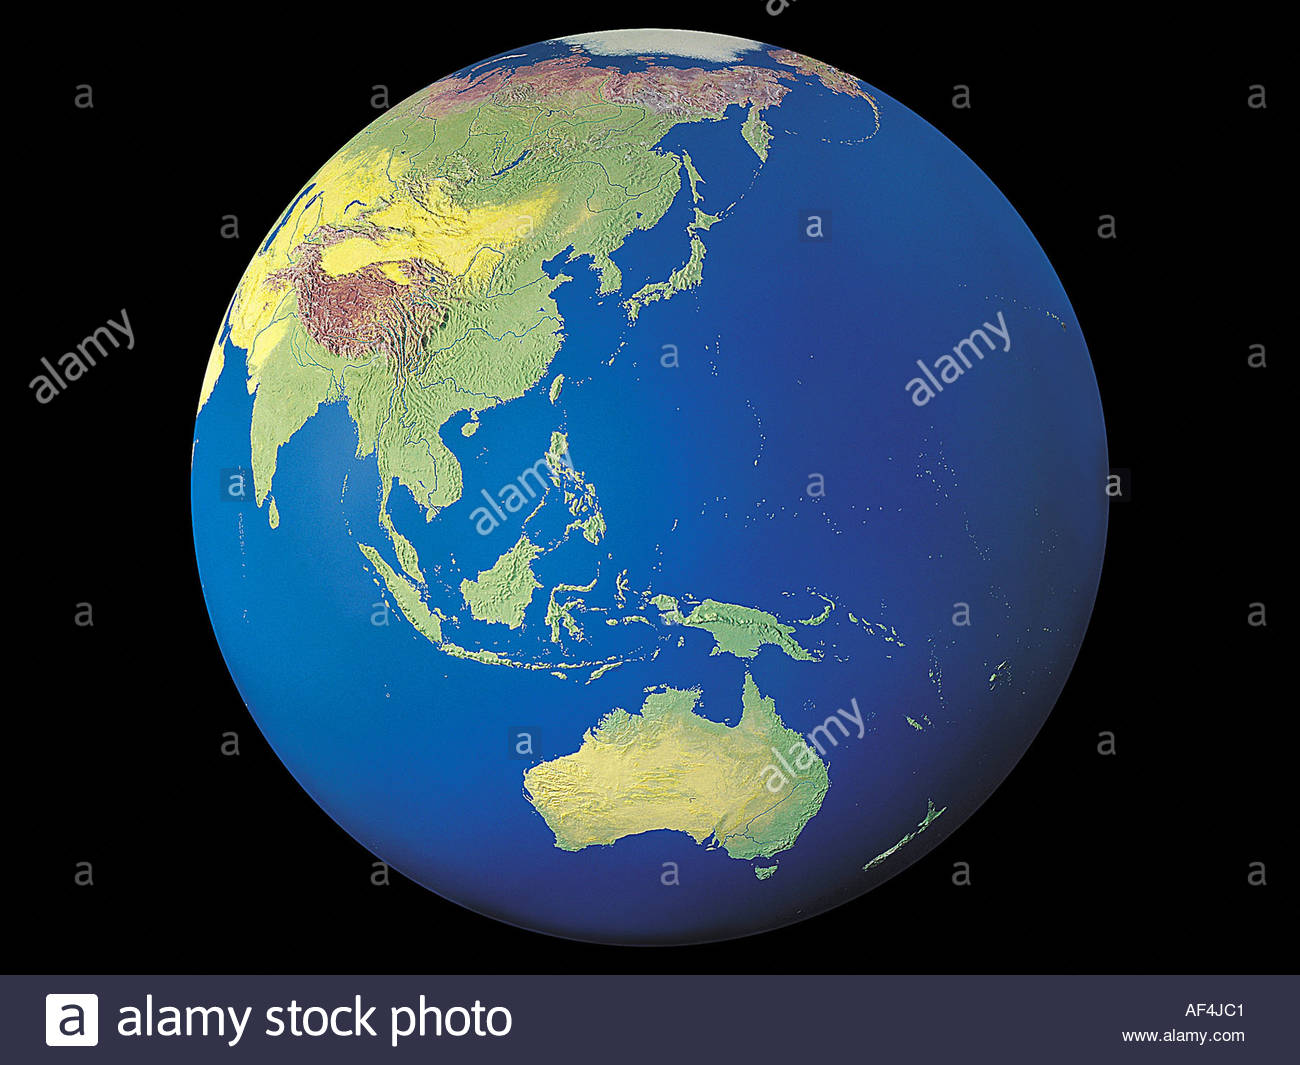 globe globes map maps asia australia china indochina